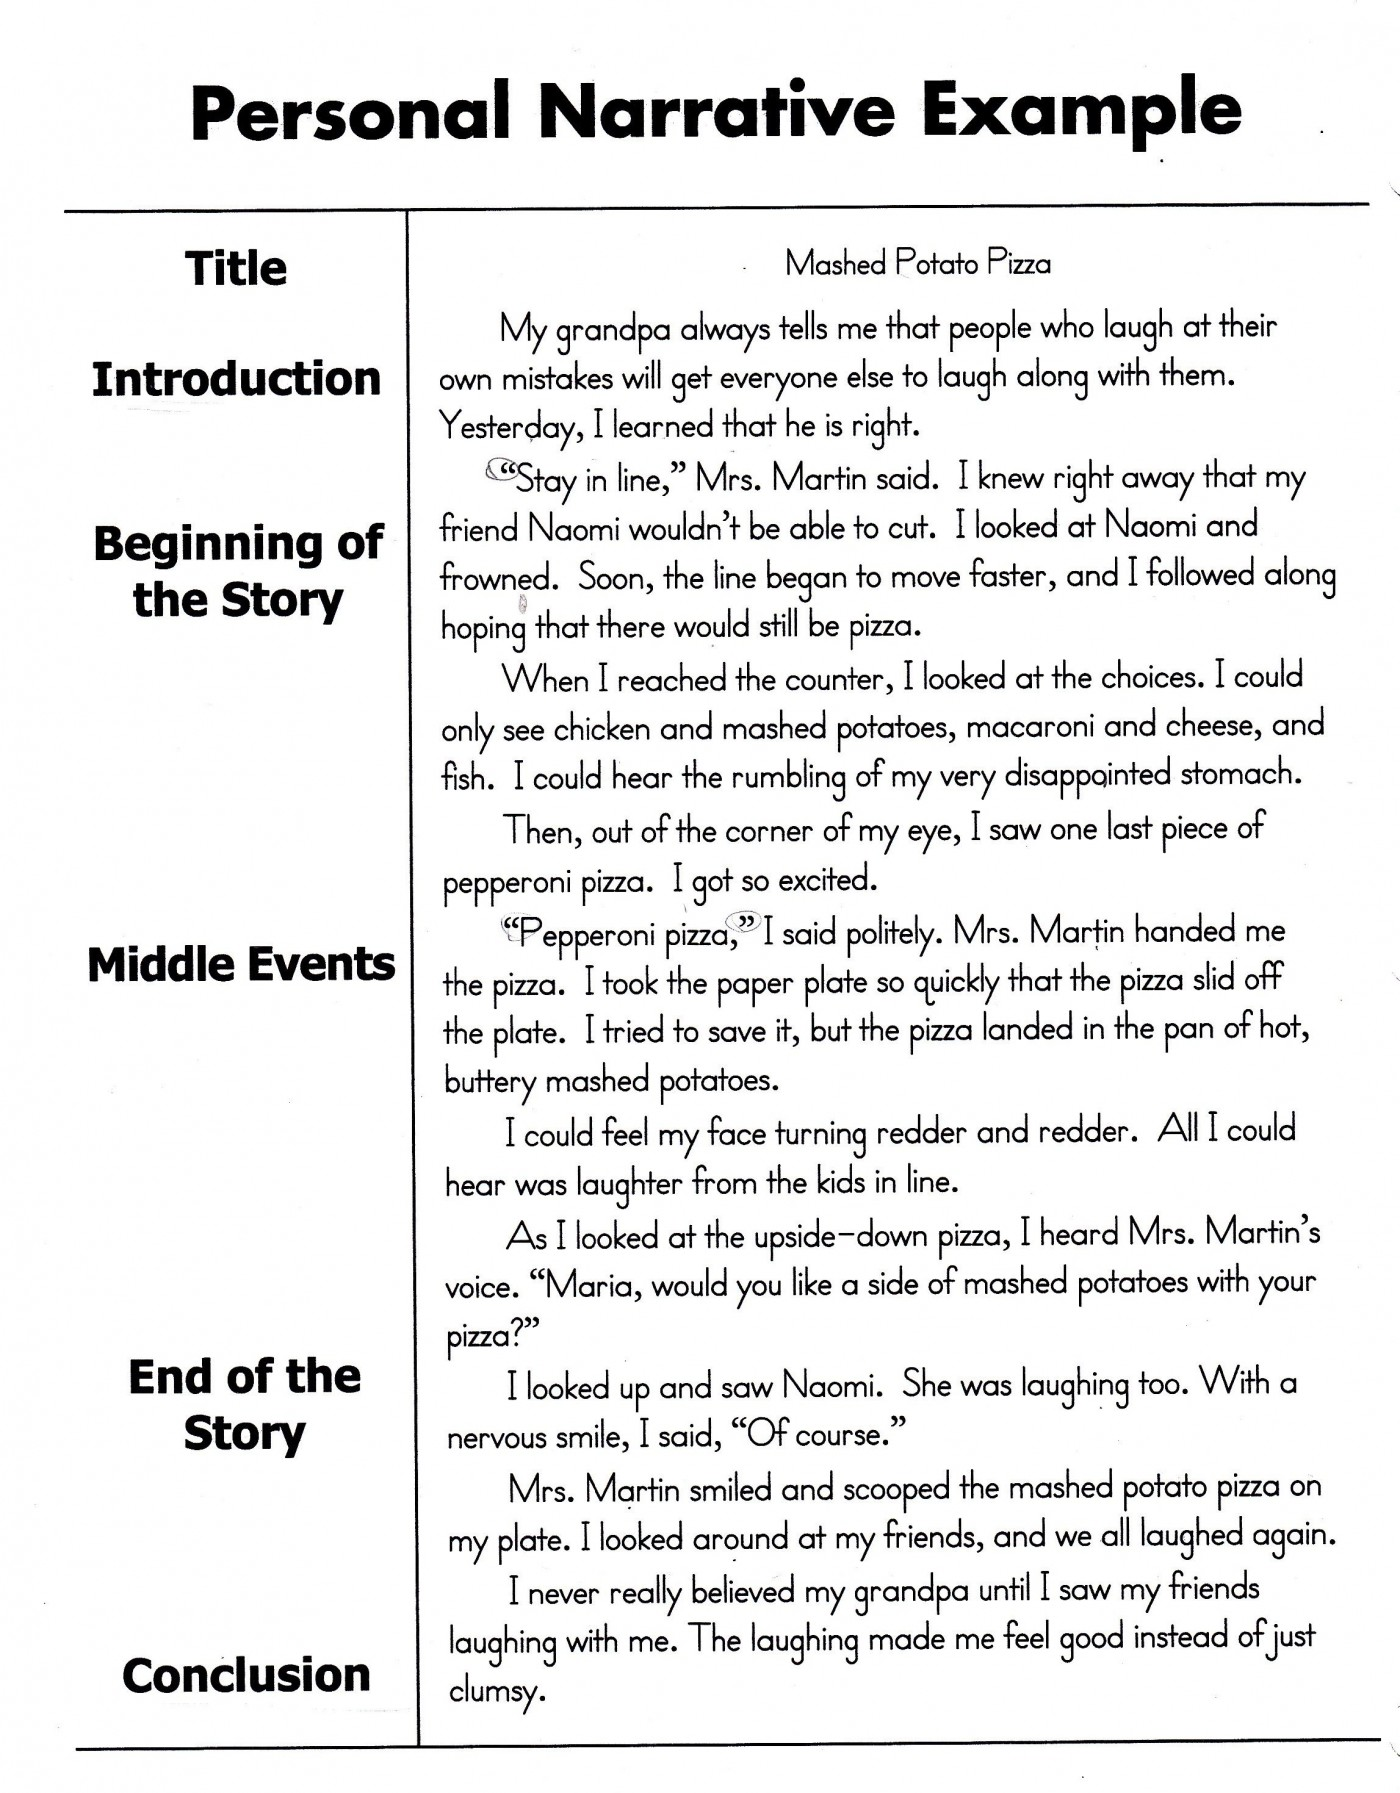 002 Personal Narrative Essay Rare About Yourself Sample Outline 1400